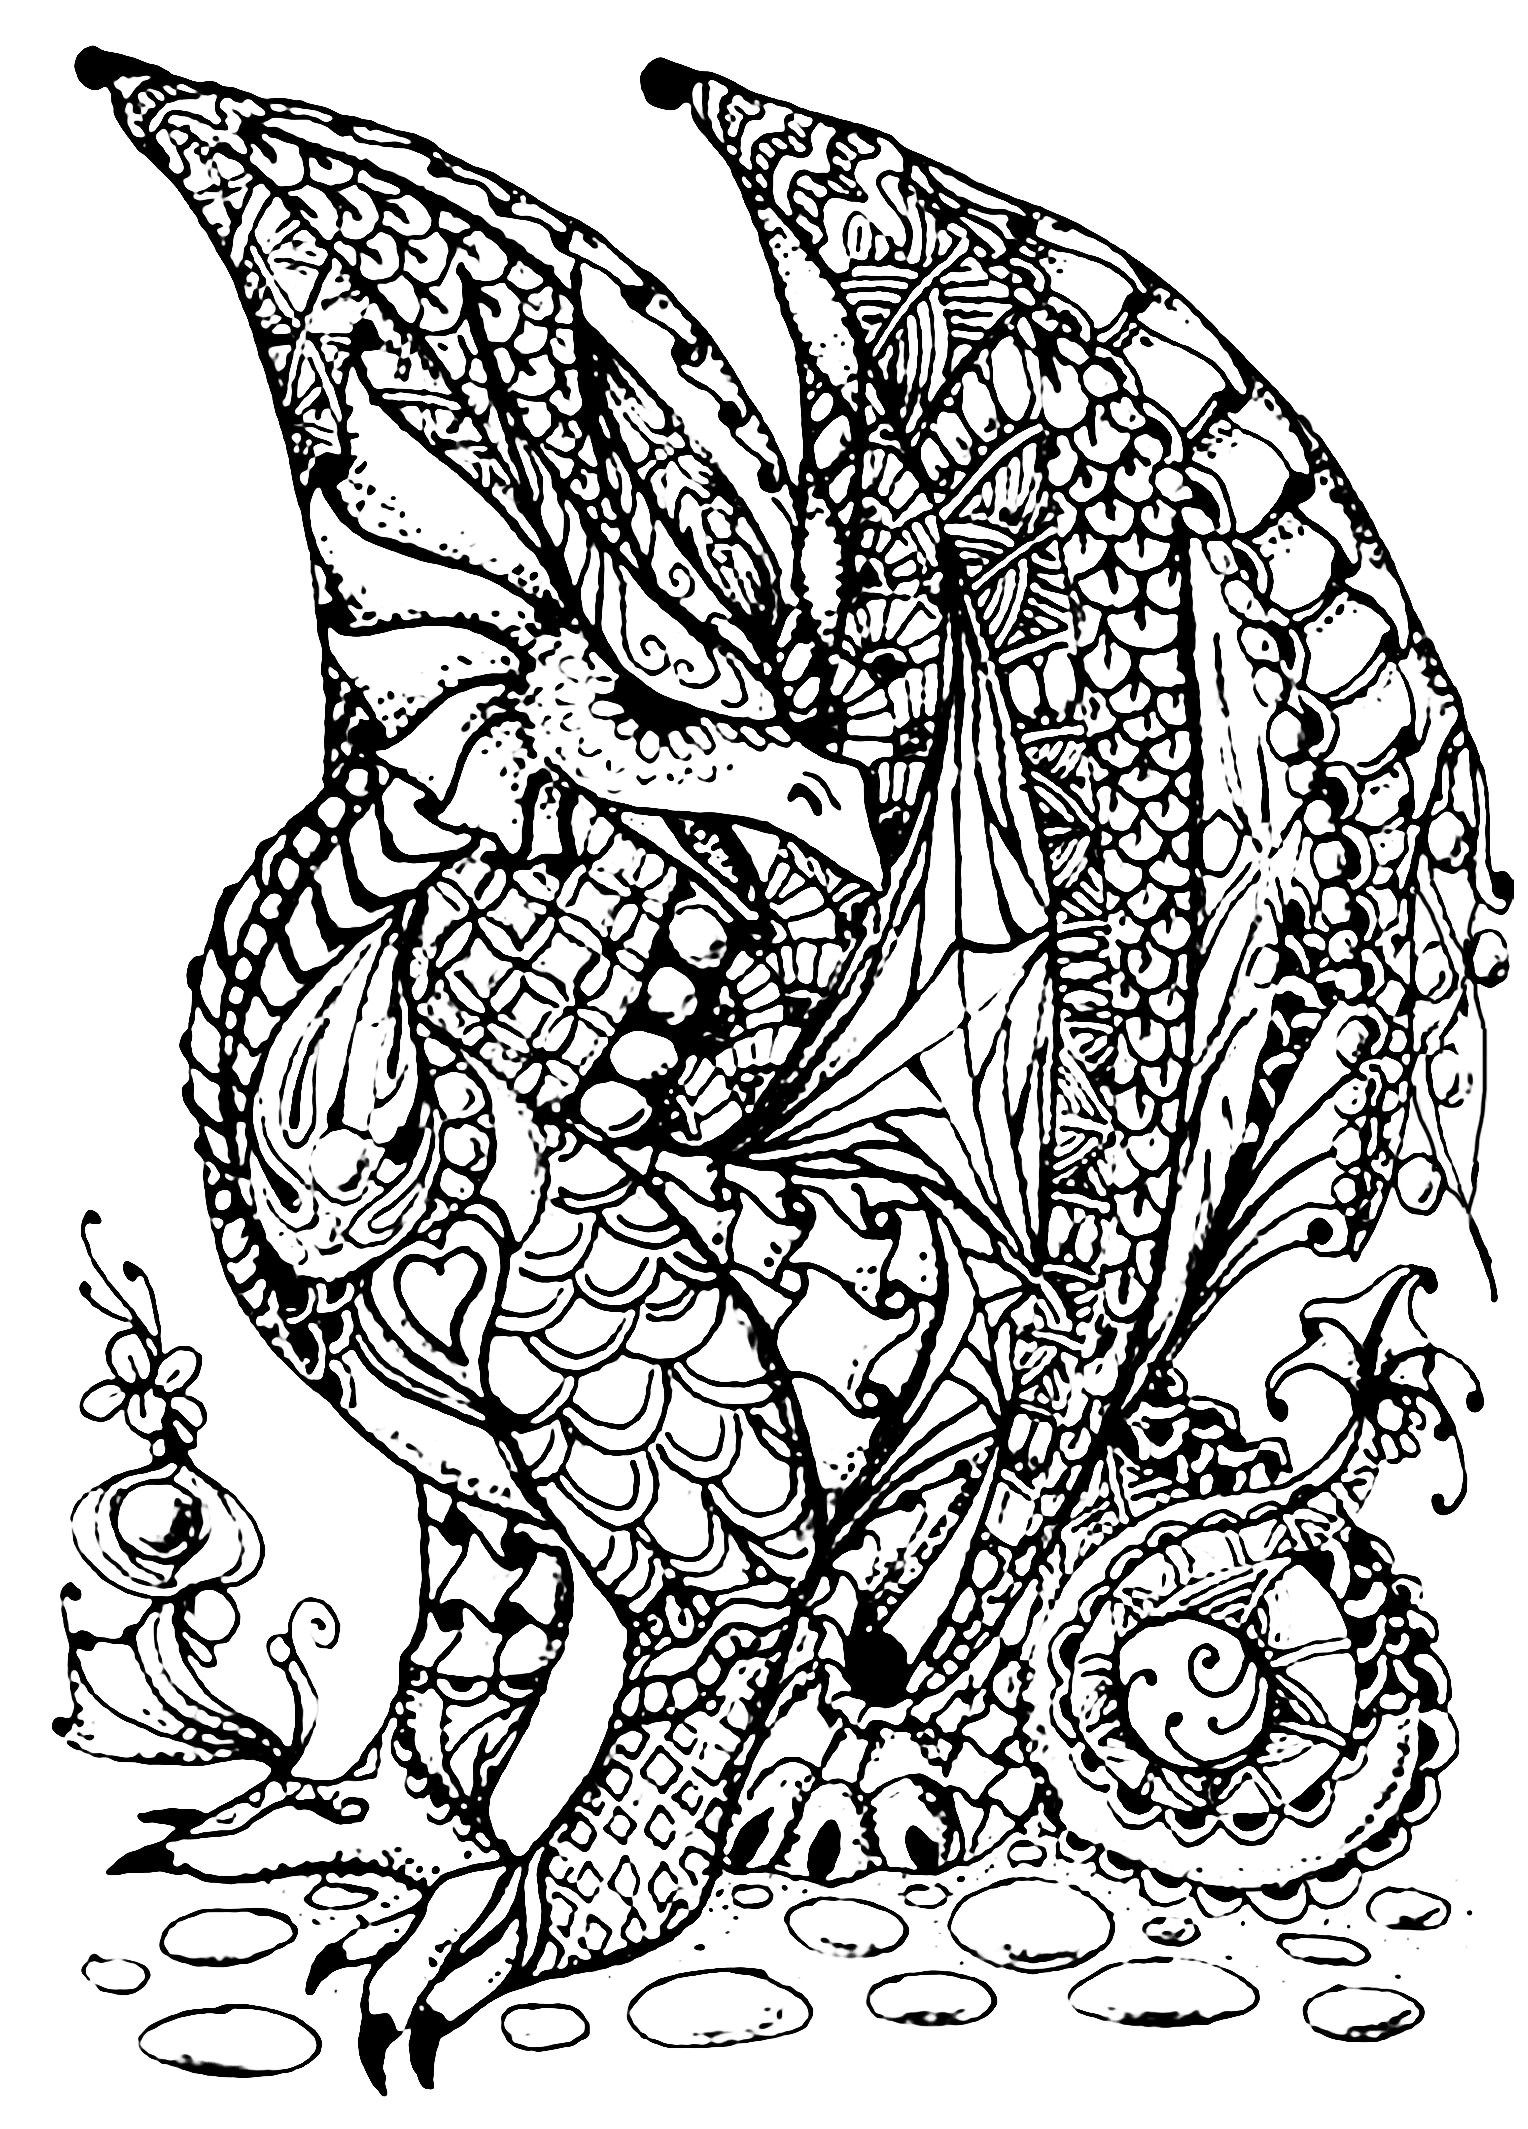 25 Awesome Image Of Coloring Pages Dragons Davemelillo Com Dragon Coloring Page Ninjago Coloring Pages Mandala Coloring Pages